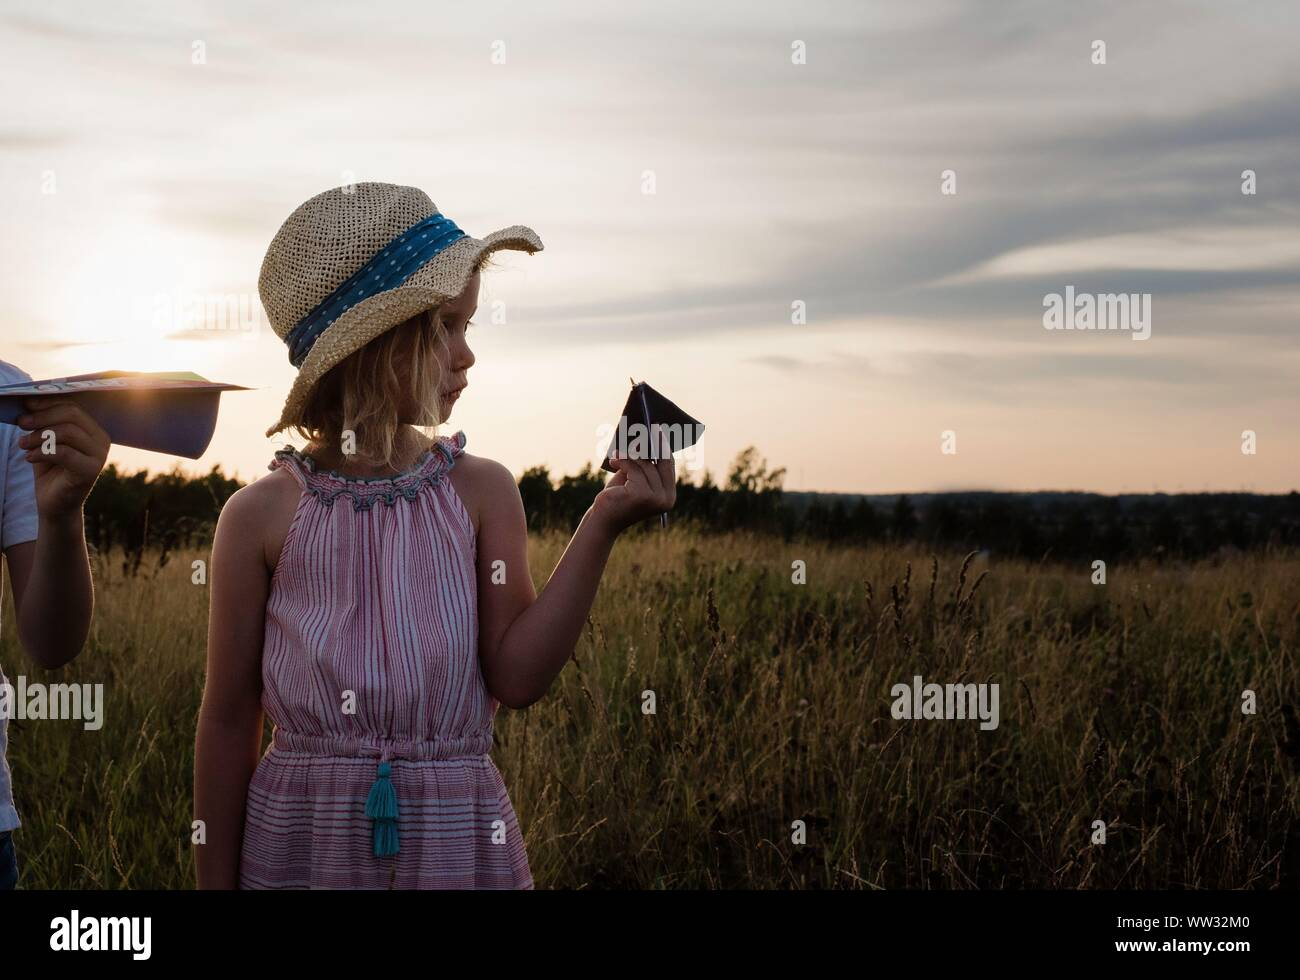 profile of a young girl holding a paper plane in a meadow at sunset Stock Photo